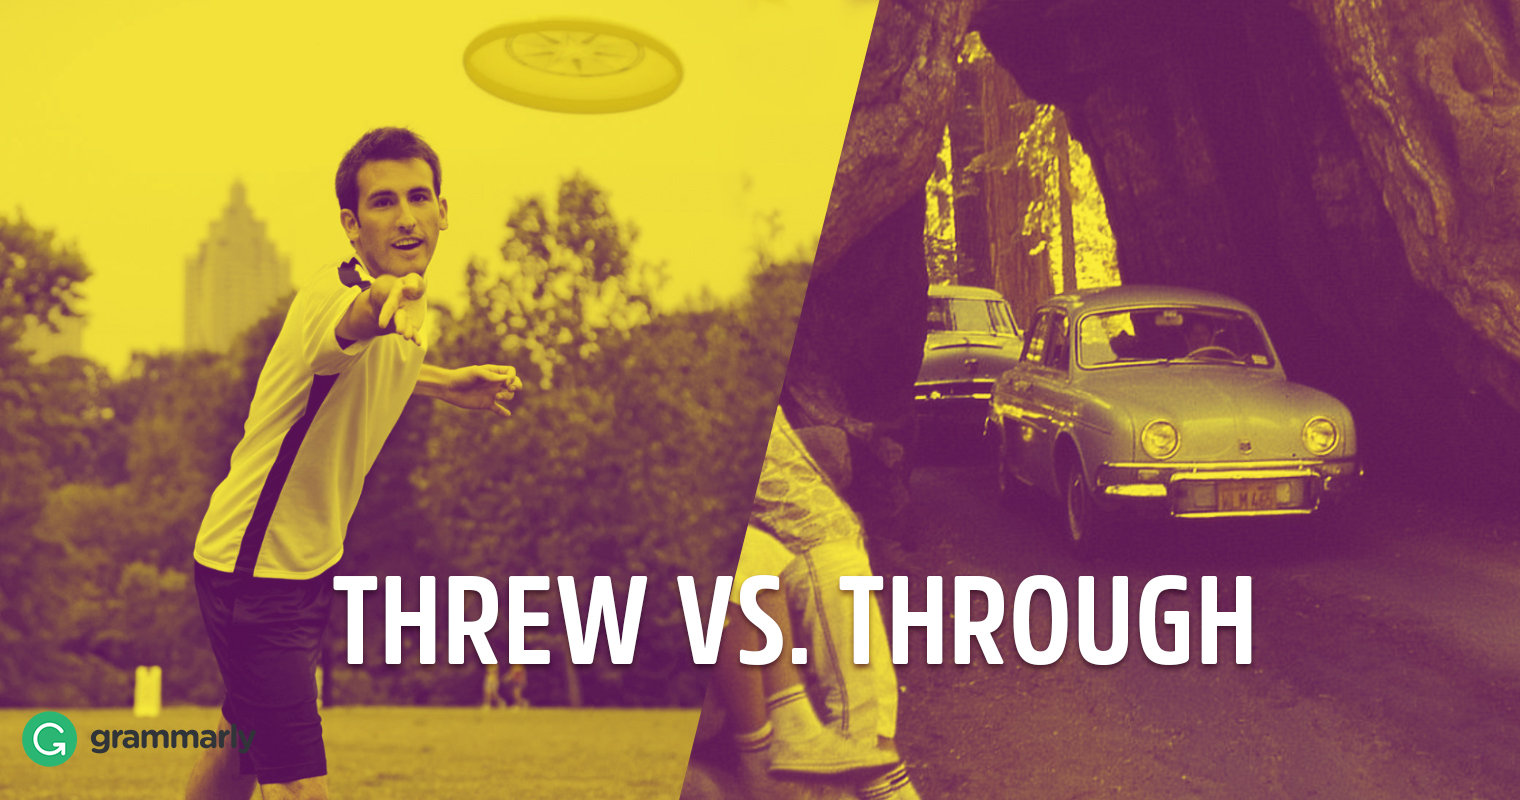 Threw vs. Through